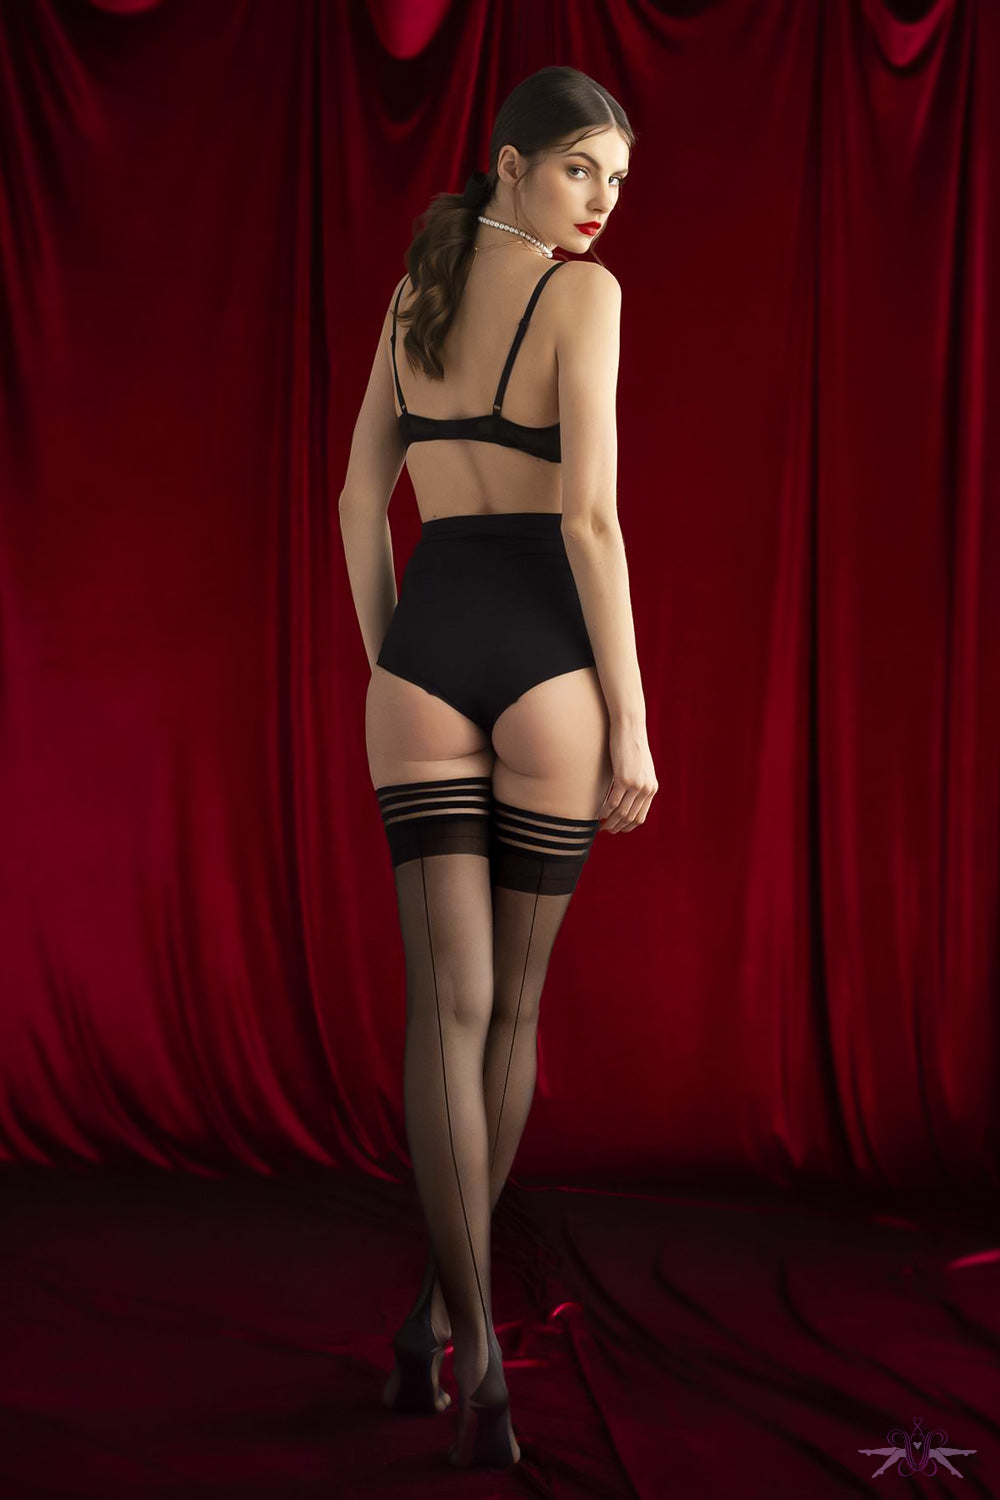 Fiore Sensual Femme Fatale Hold Ups - Mayfair Stockings